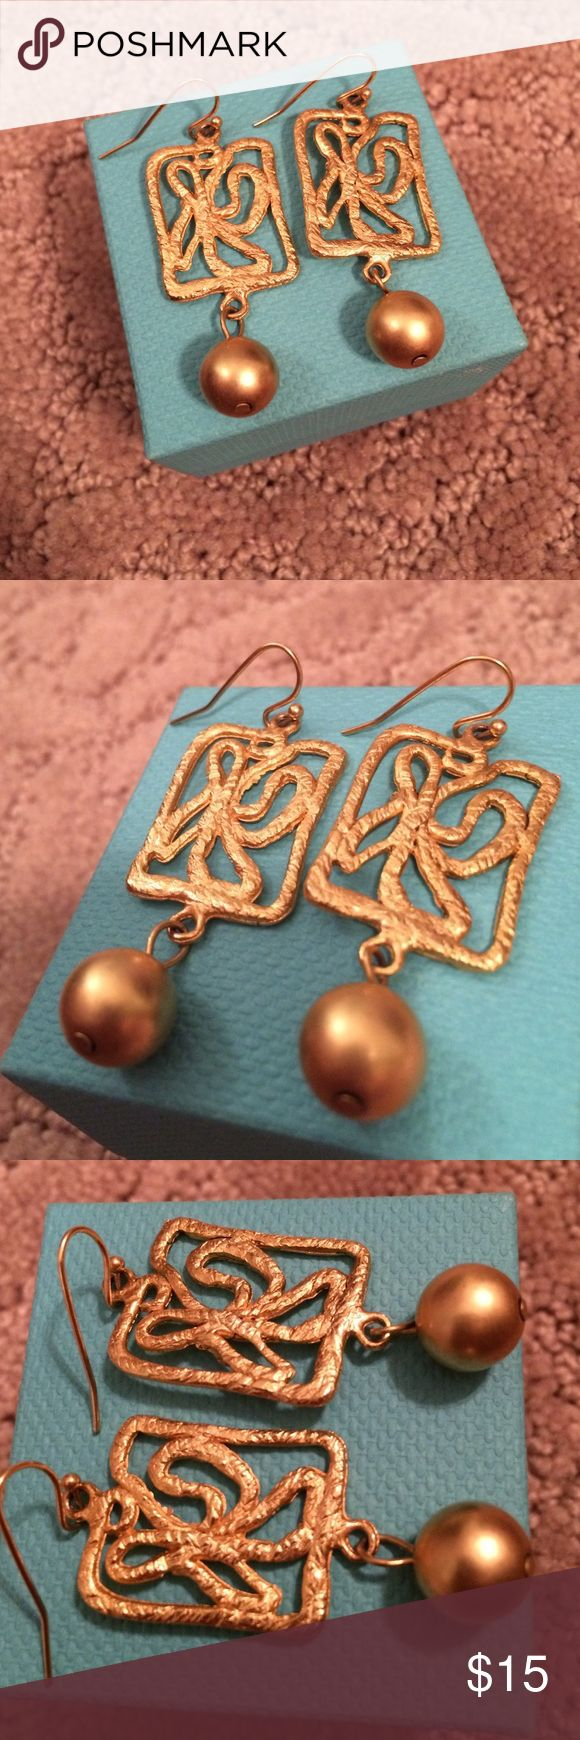 John Wind Gold Earrings Perfect Condition John Wind Earrings. Gold. Box not included. John Wind Jewelry Earrings